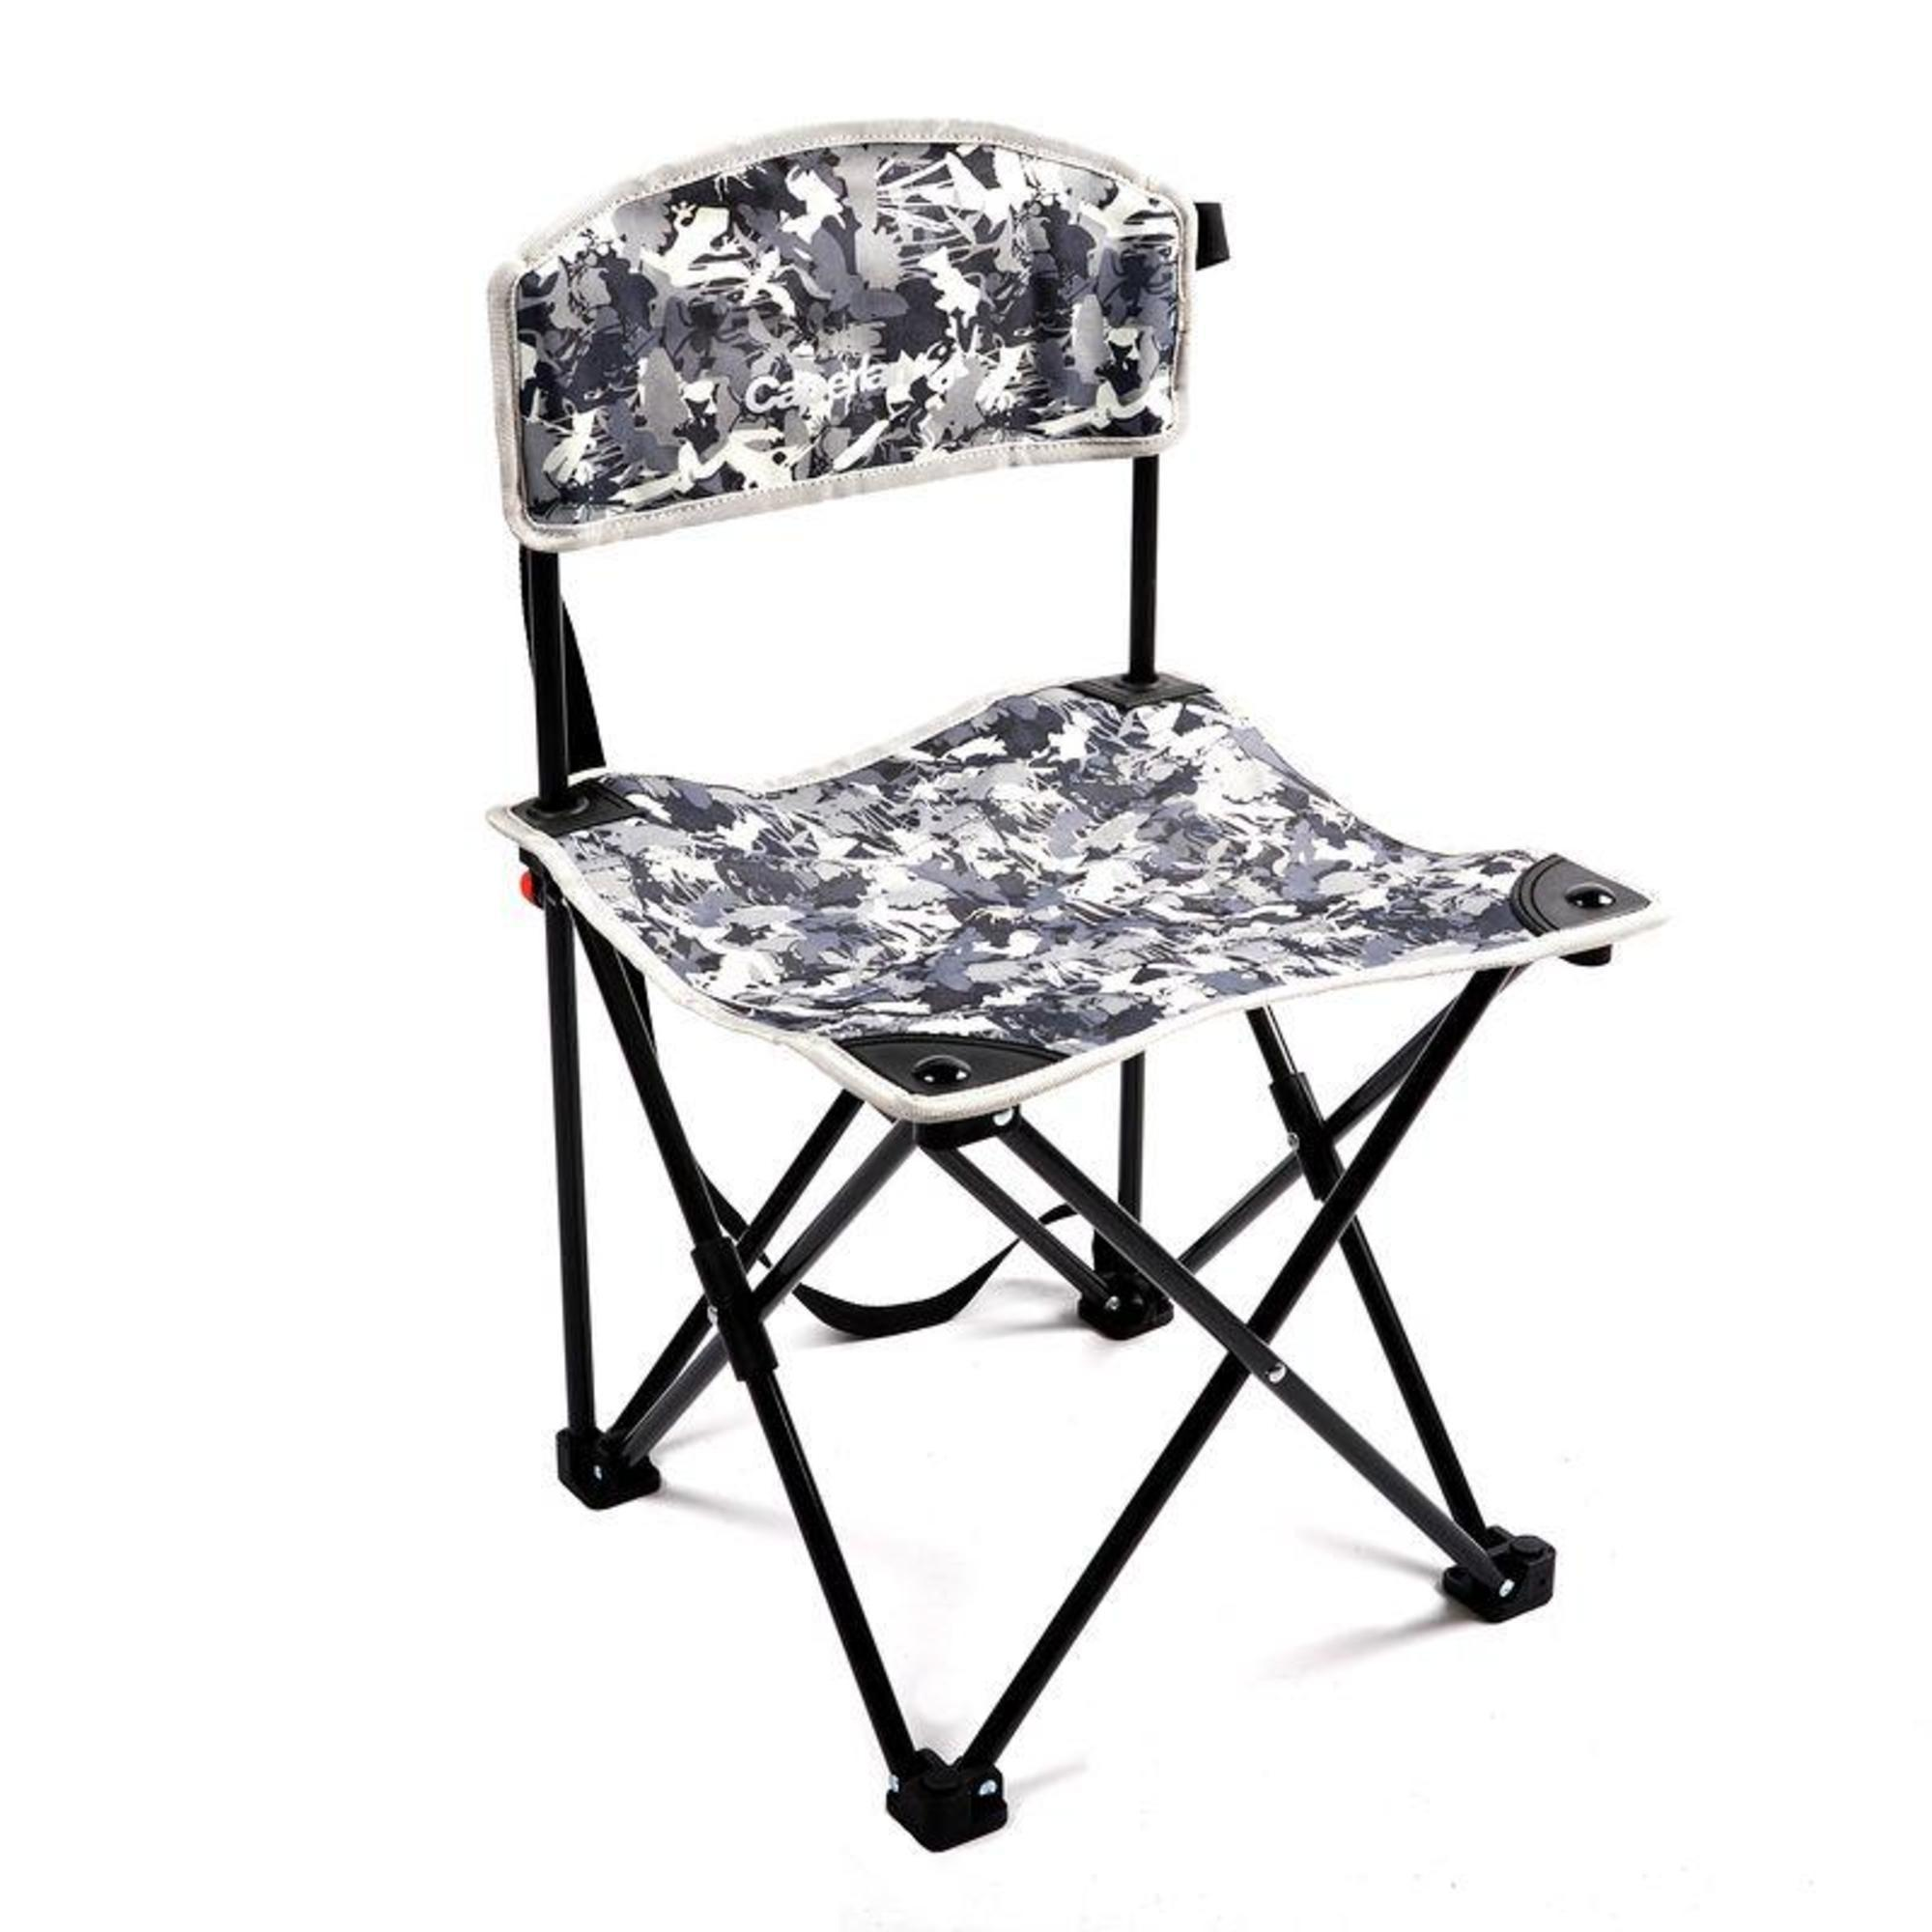 Essenseat pact Kid fishing folding chair